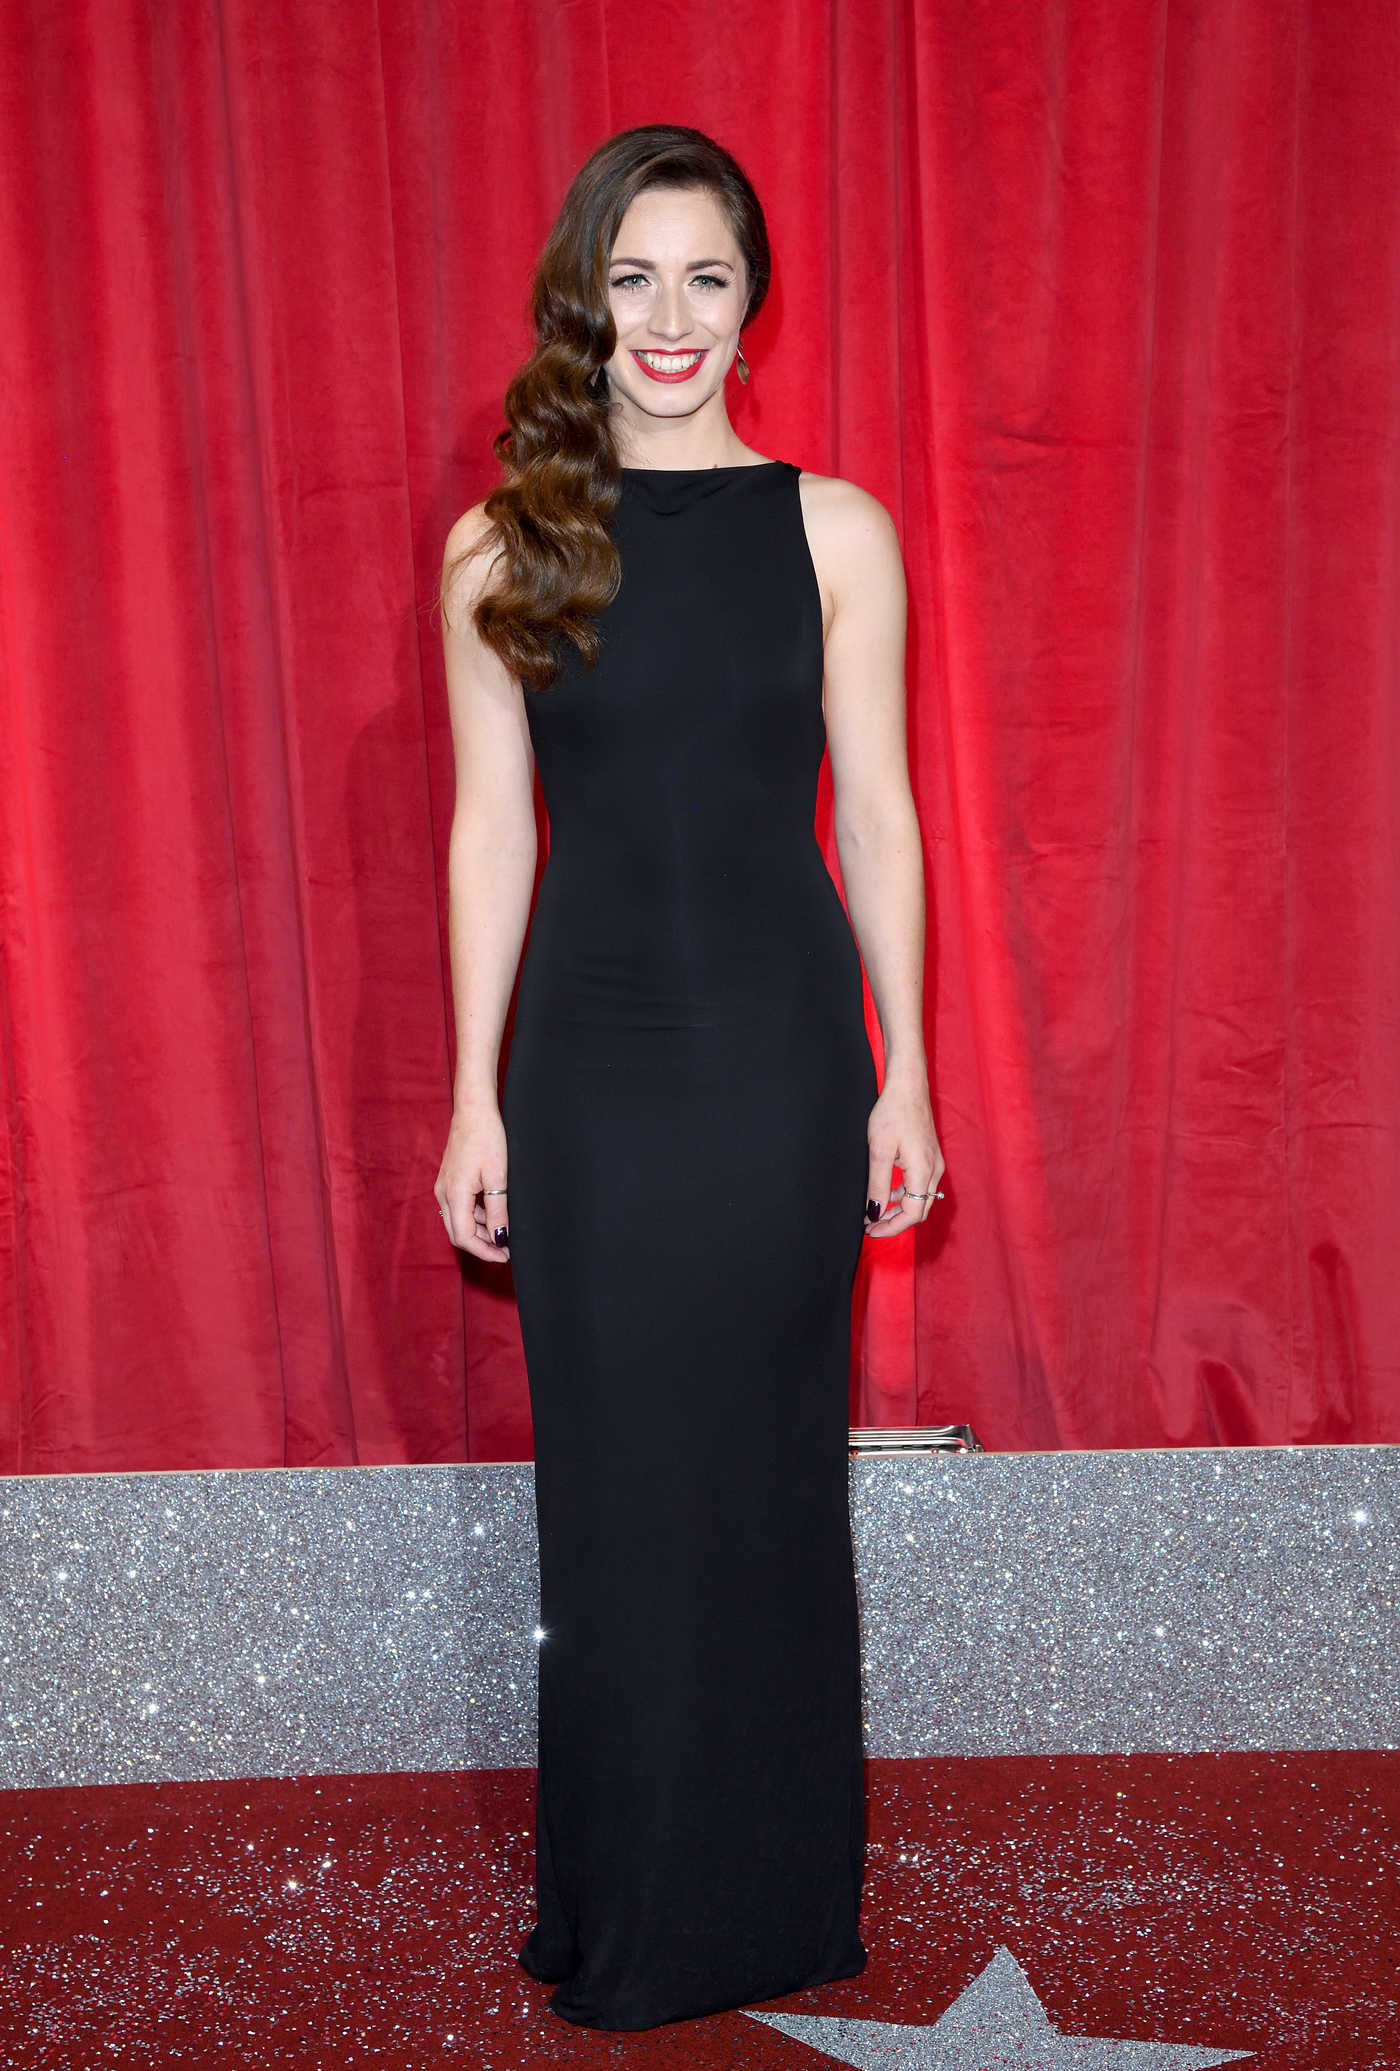 Julia Goulding at the 2017 British Soap Awards in Manchester 06/03/2017